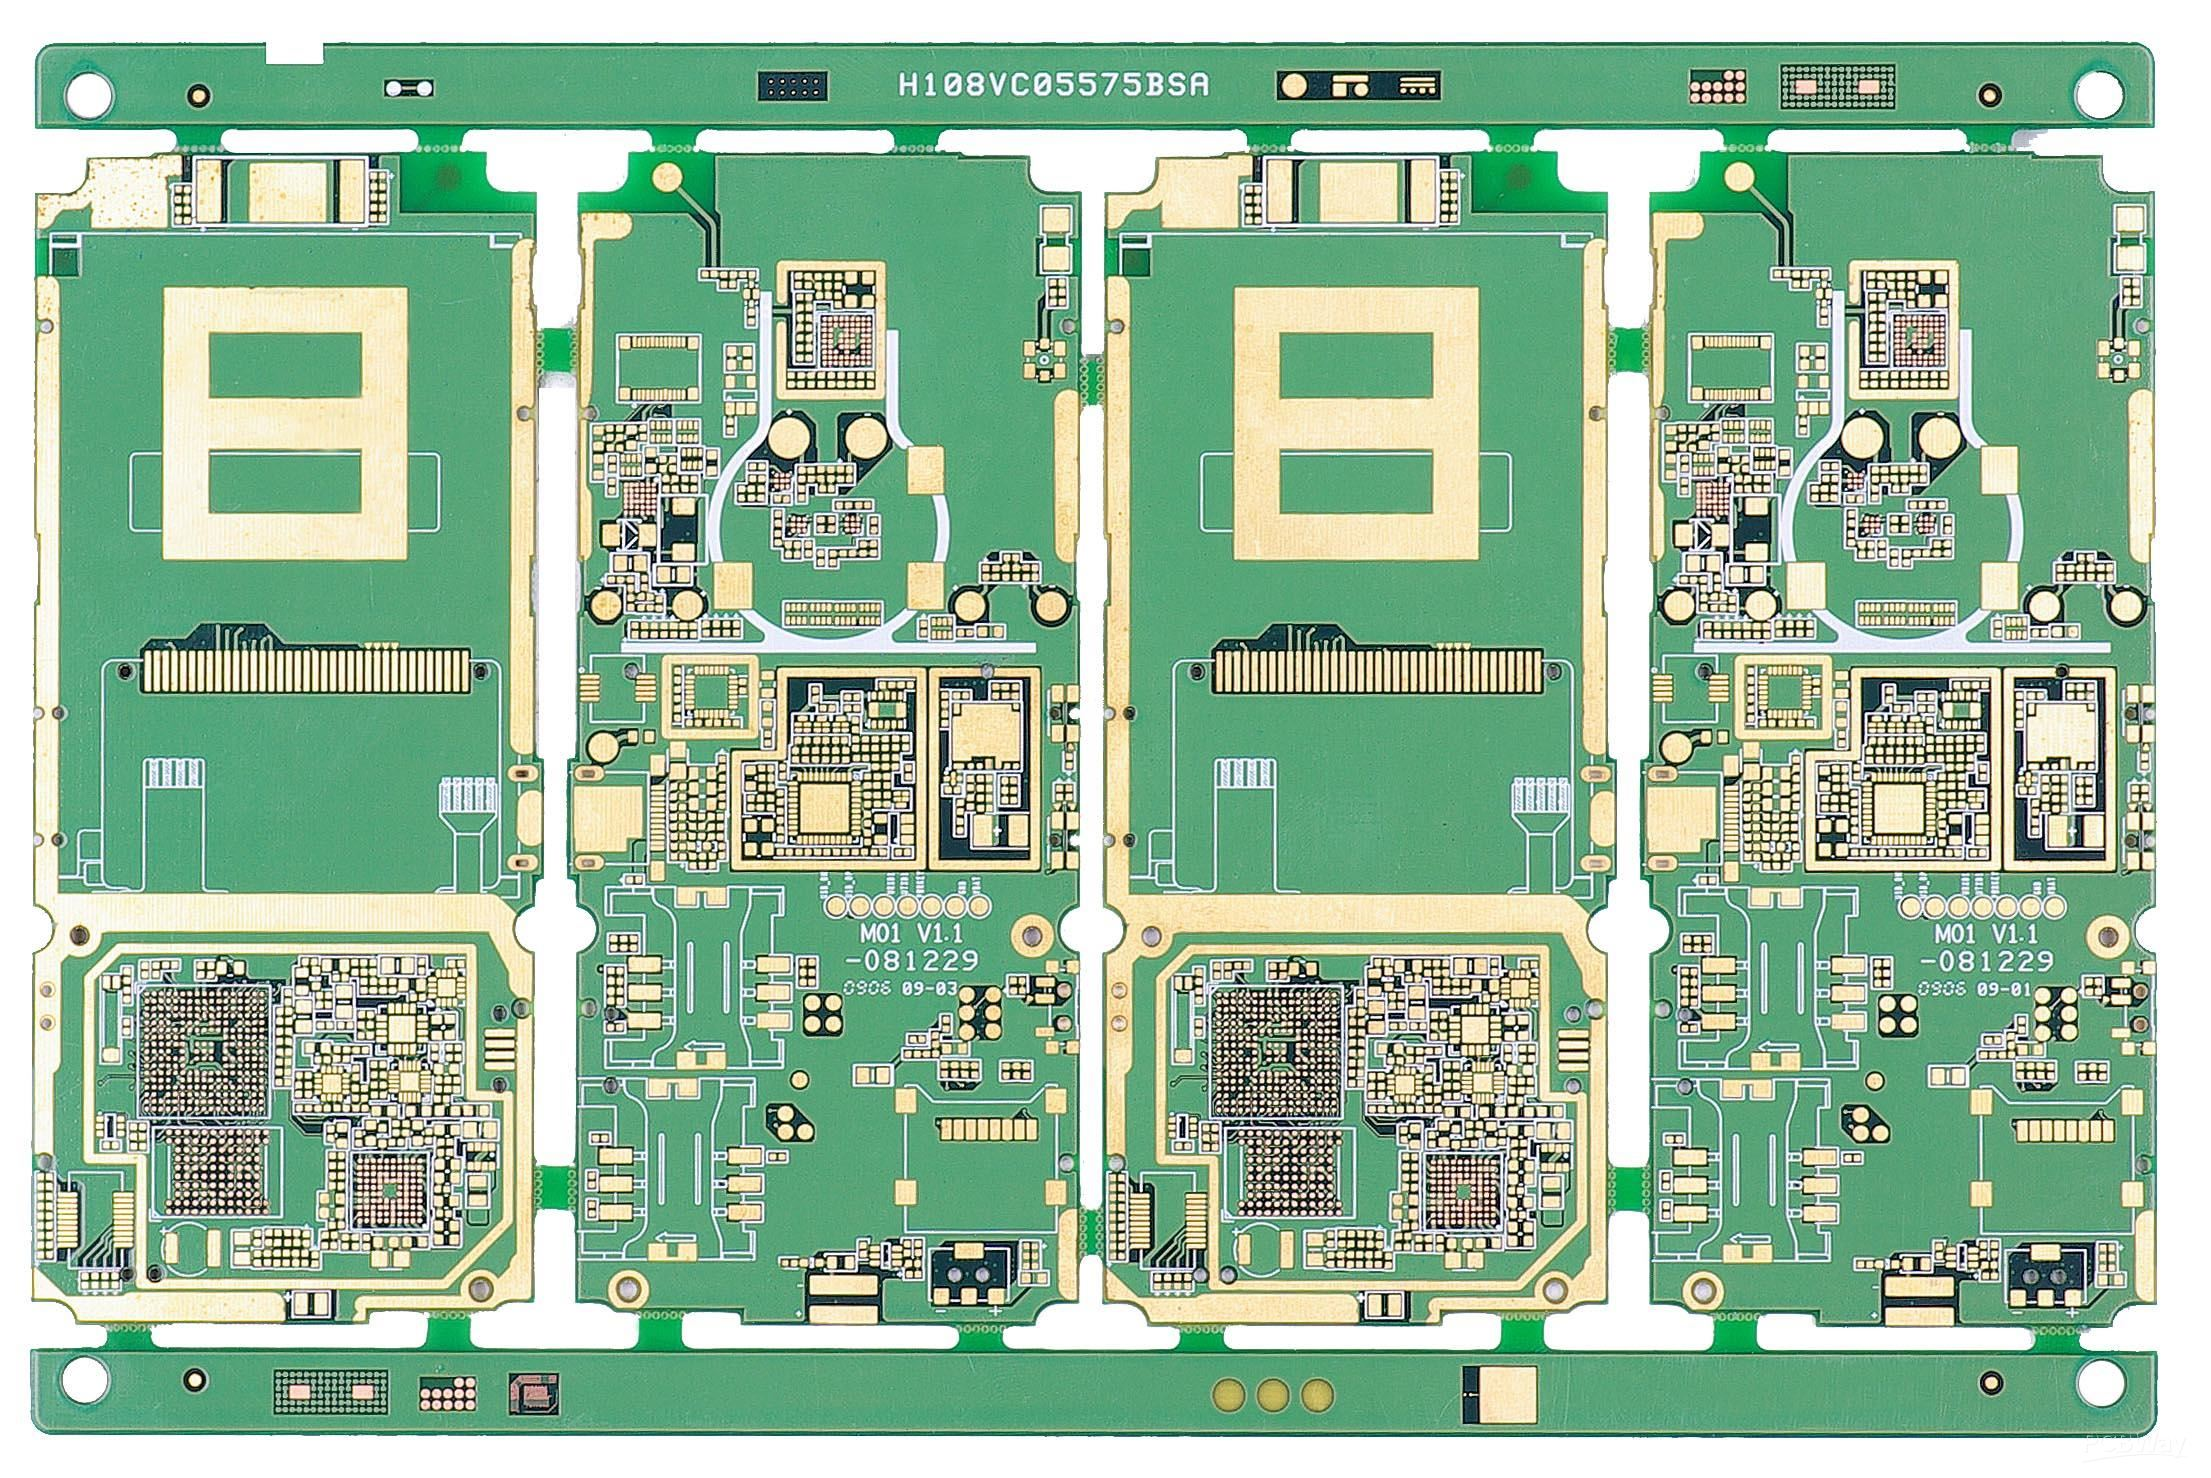 Engineering Technical Printed Circuit Board Blog Pcbway Large Image 6 Layer Multilayer Pcb For Medical